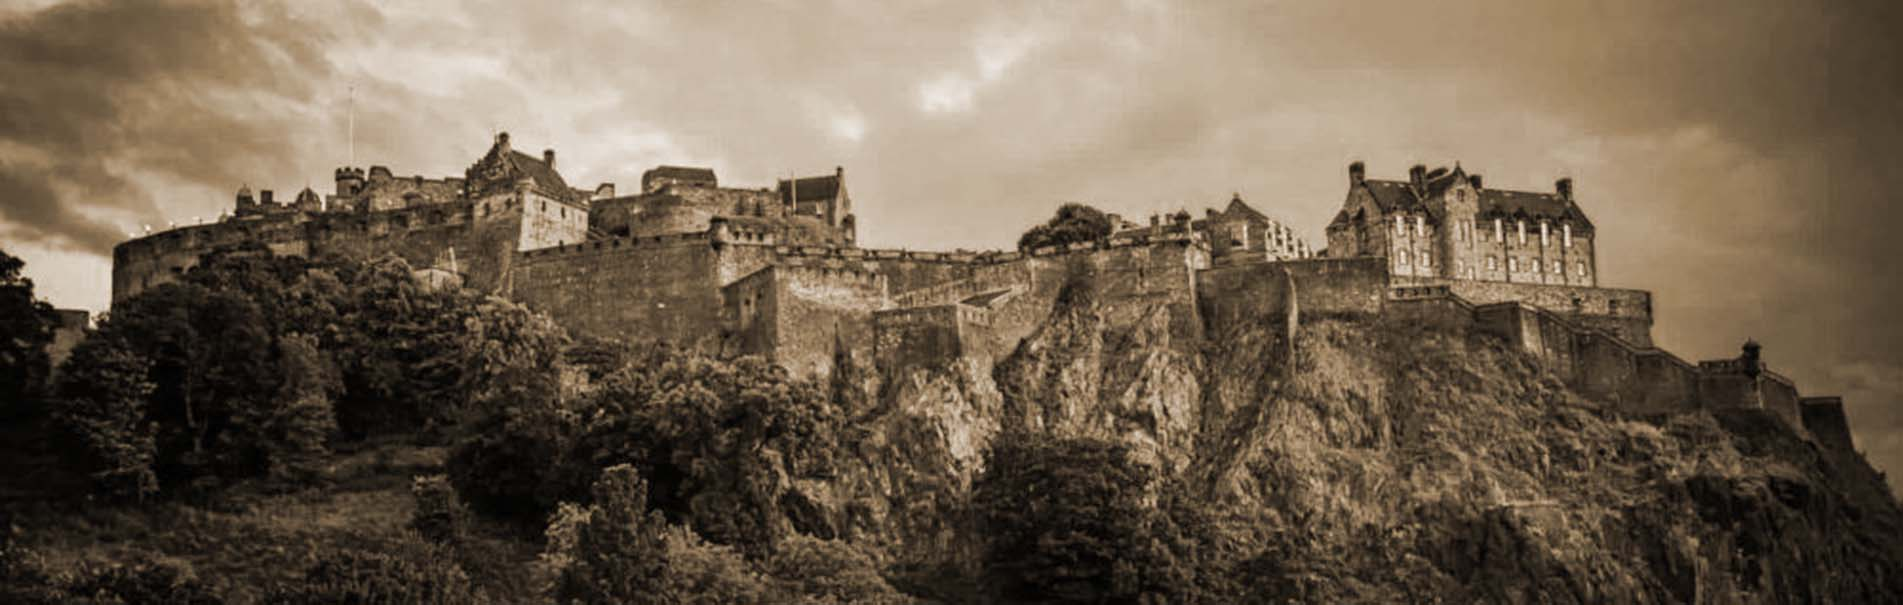 edinburgh-castle-sepia